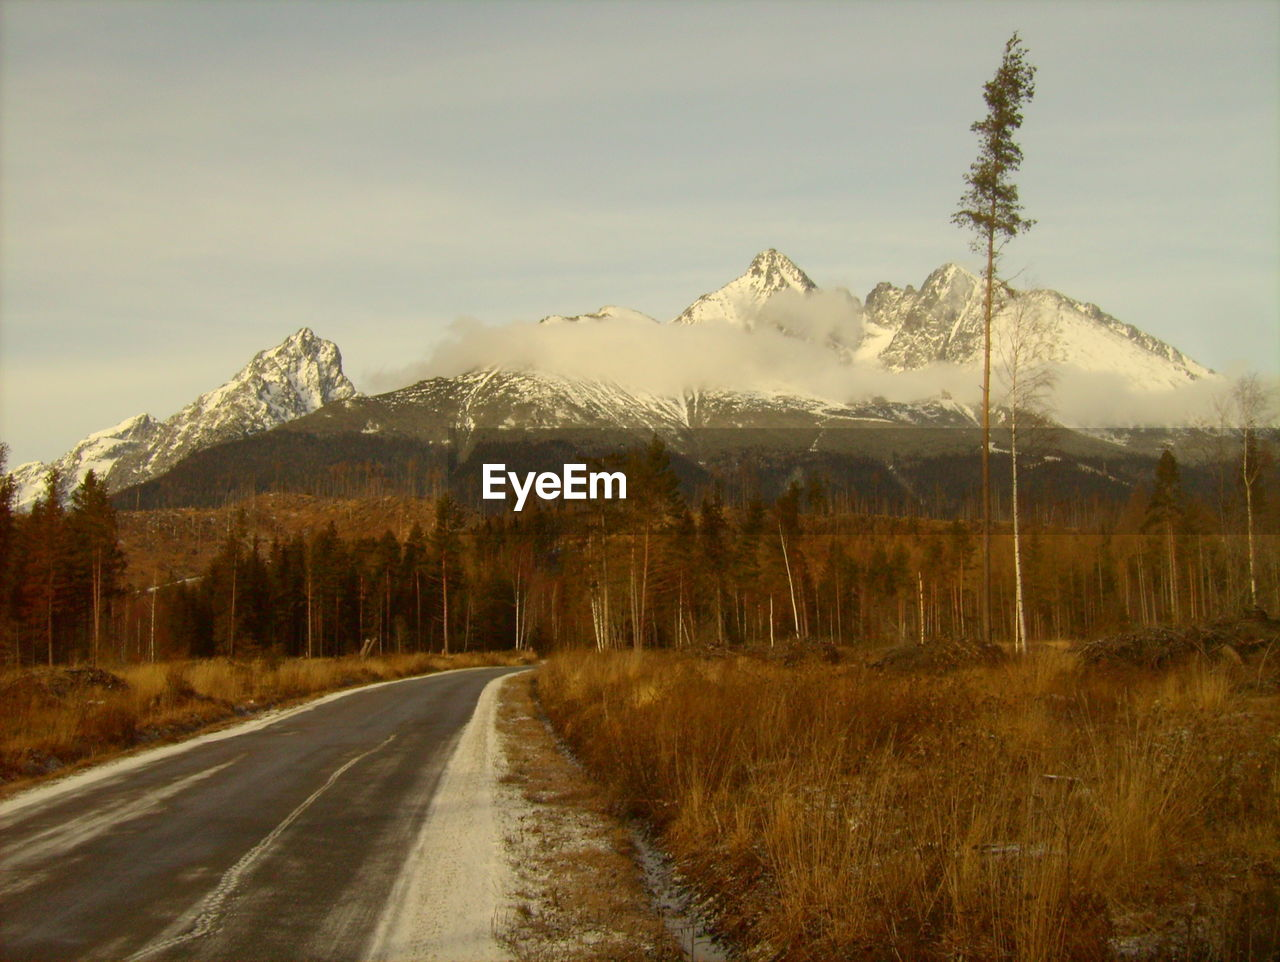 Empty Road Leading Towards Snow Covered Mountains Against Sky